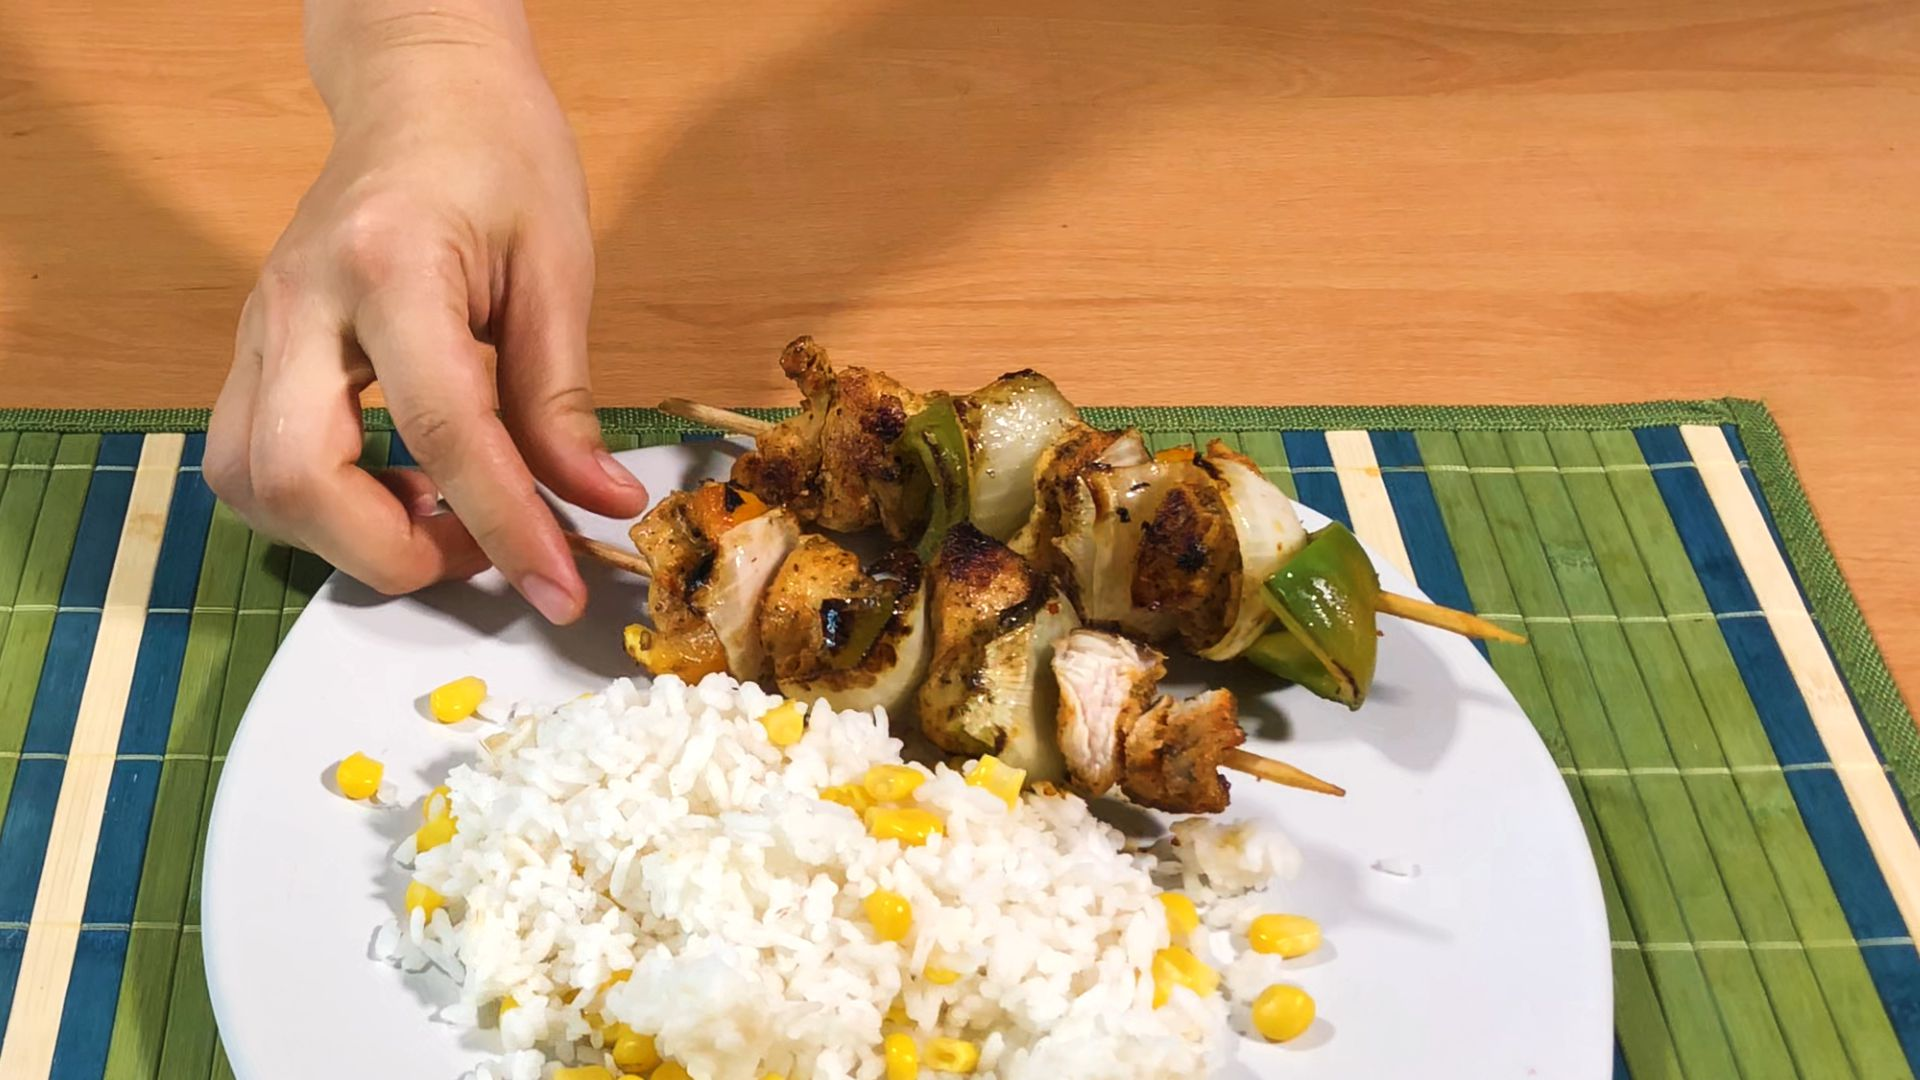 Serving suggestion for your Spicy Cajun Chicken Skewers